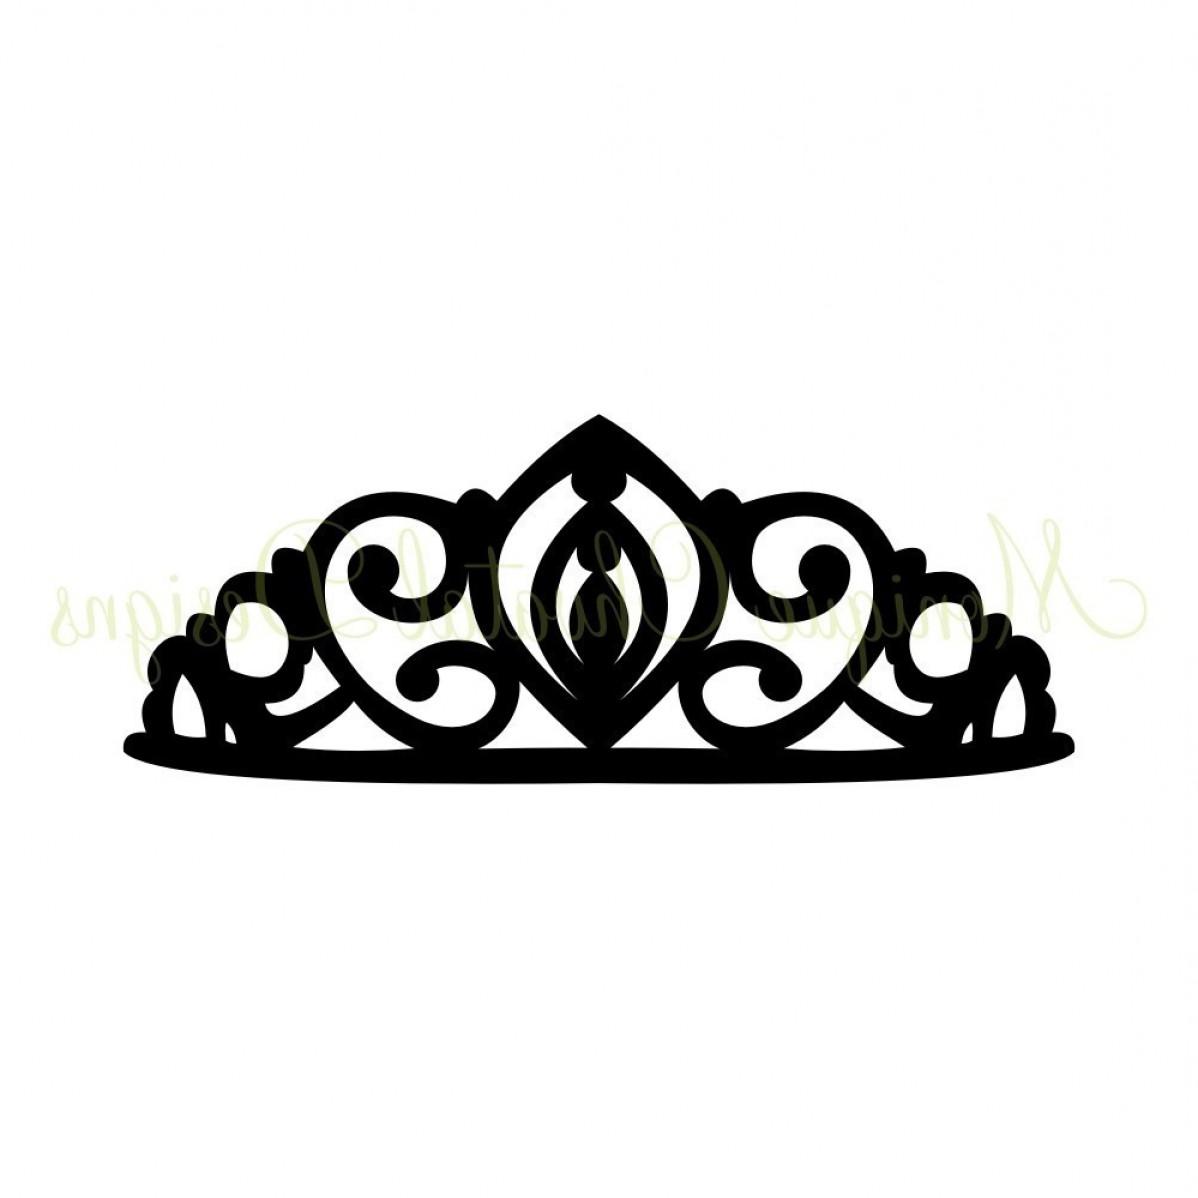 1198x1198 King And Queen Crowns Together Clipart